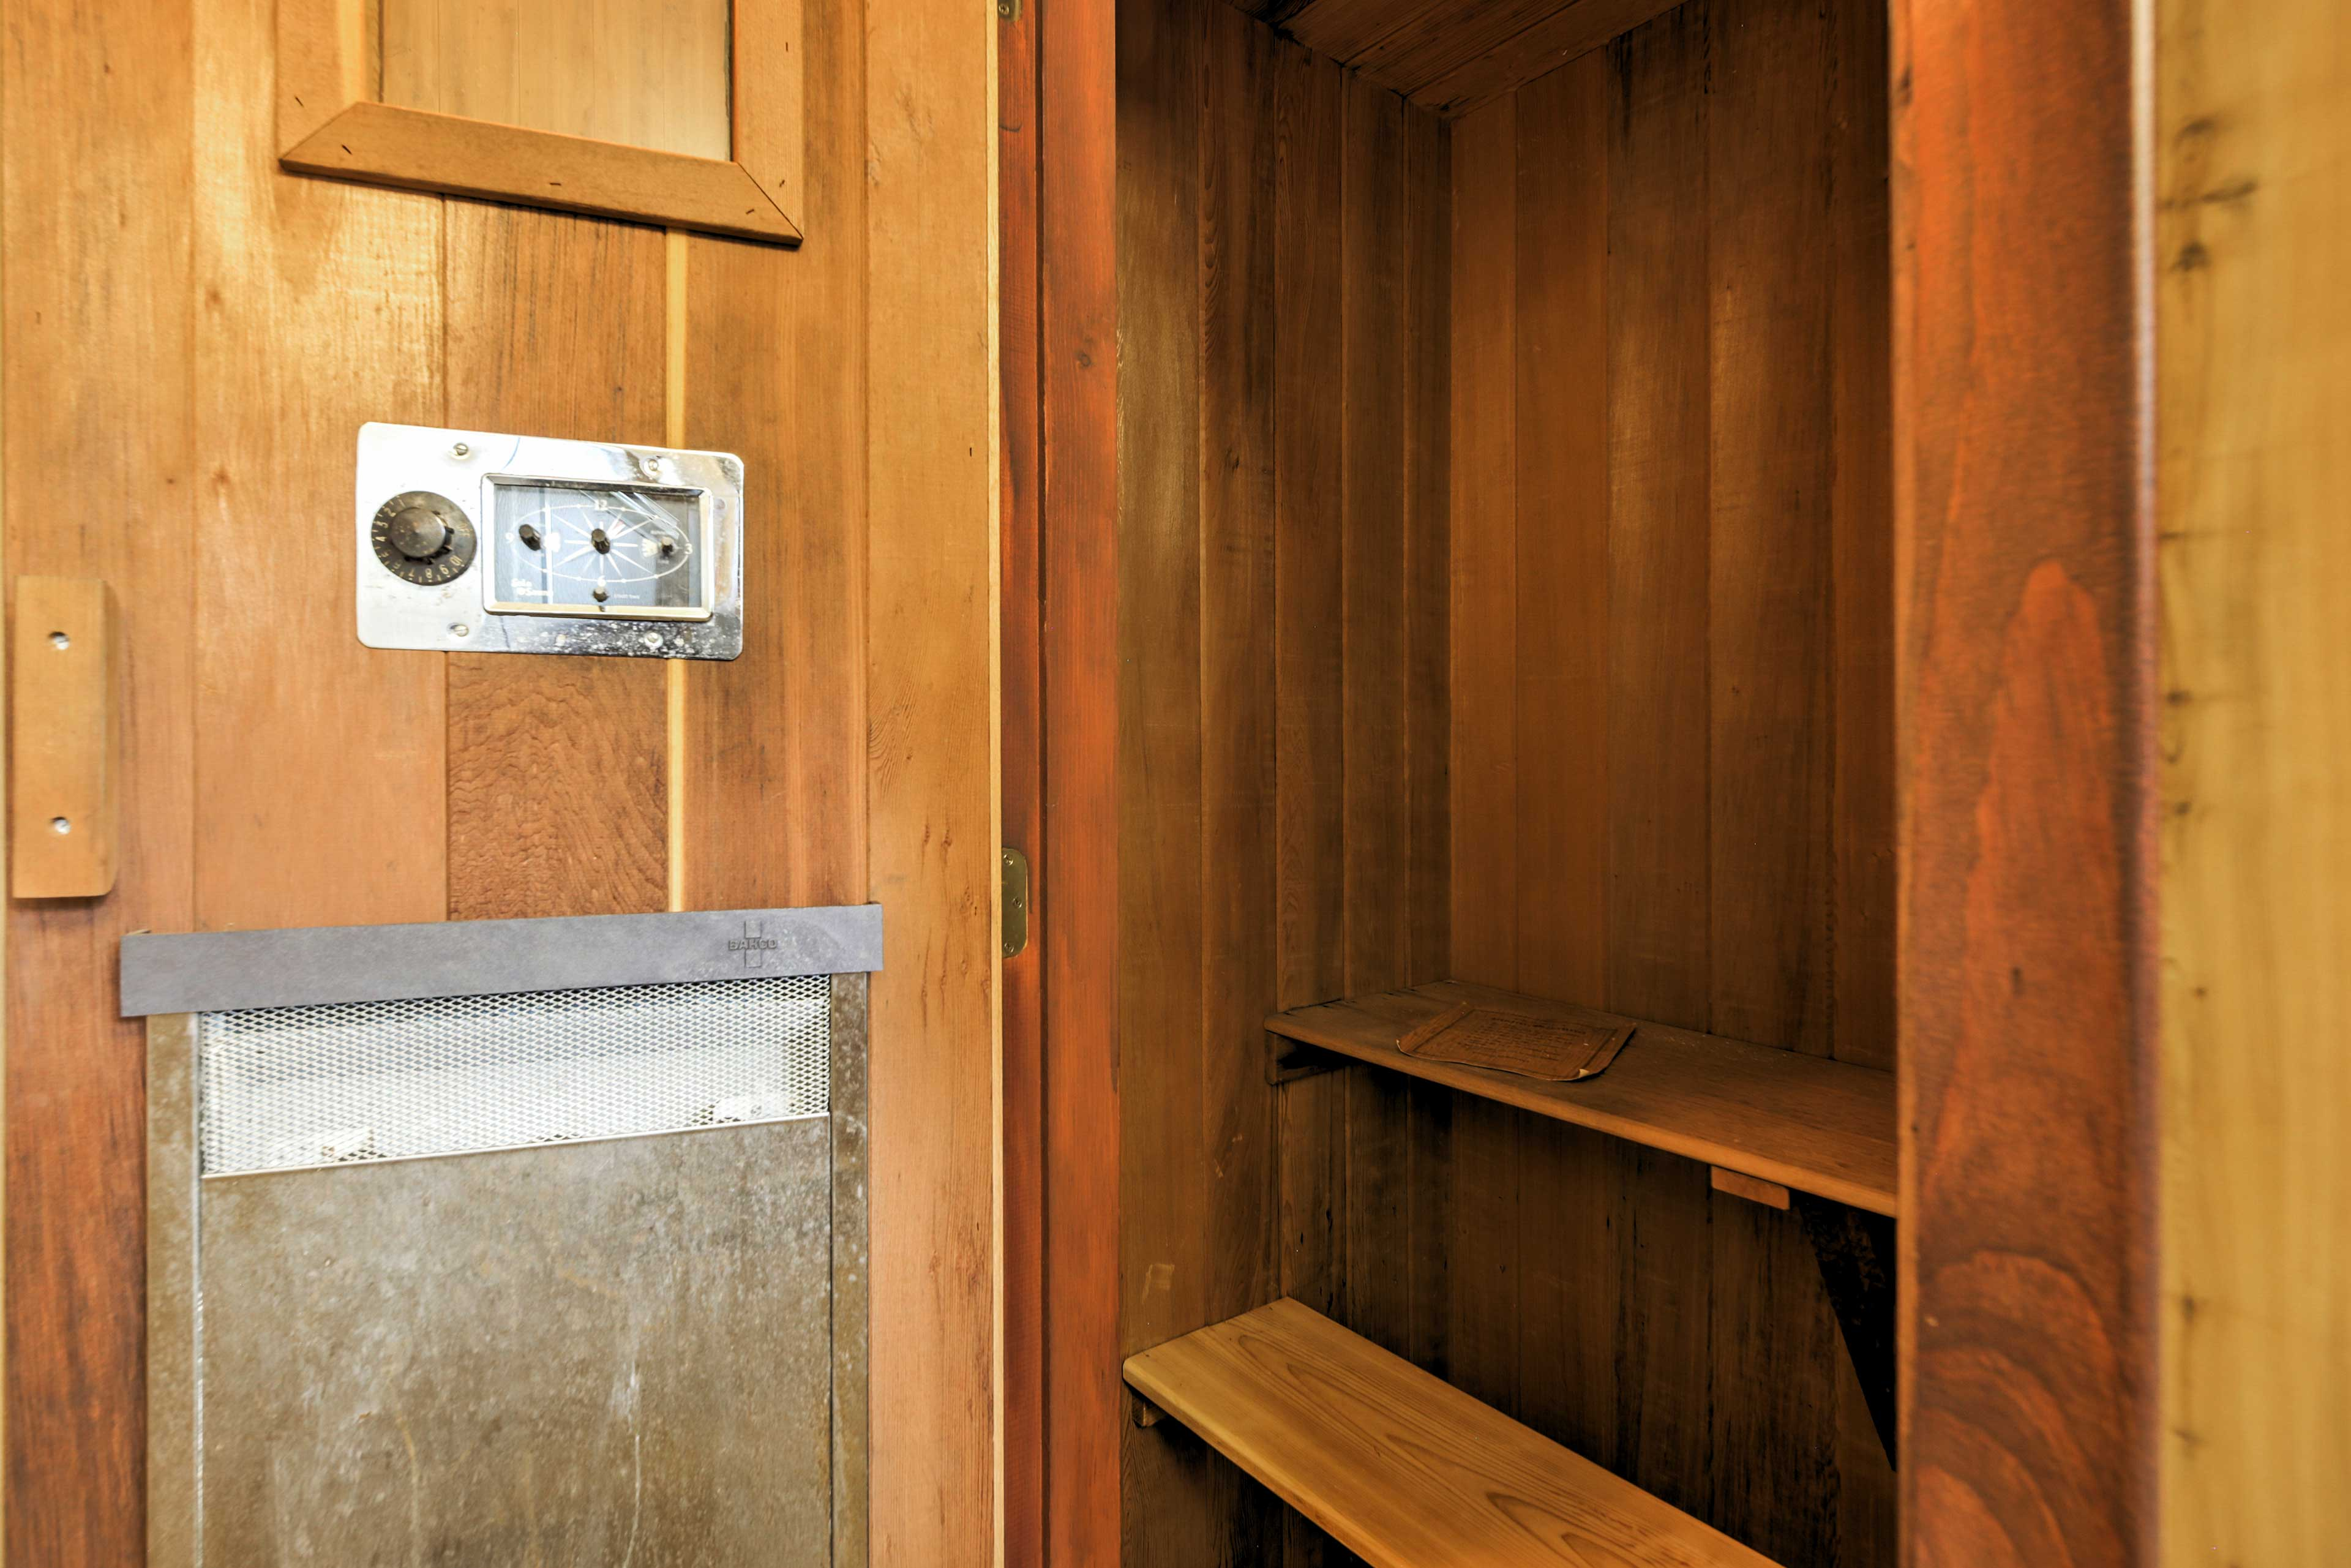 Enjoy a relaxing steam in the built-in sauna.